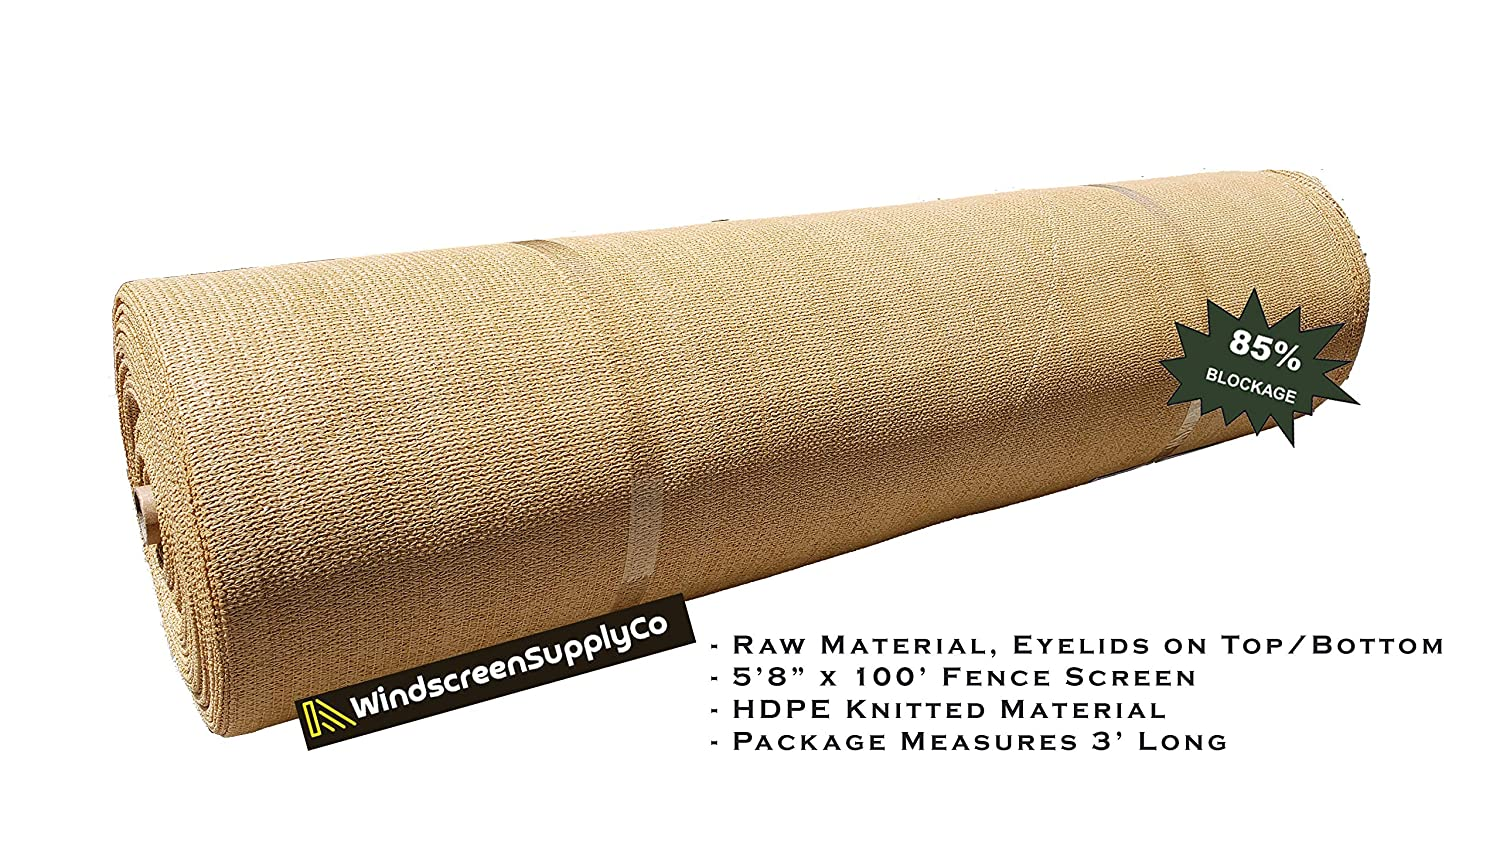 WindscreenSupplyCo 5 8 X 100 Shade Fabric Roll Sunblock Shade Cloth, 85 UV Resistant Mesh Netting Cover 1, Tan